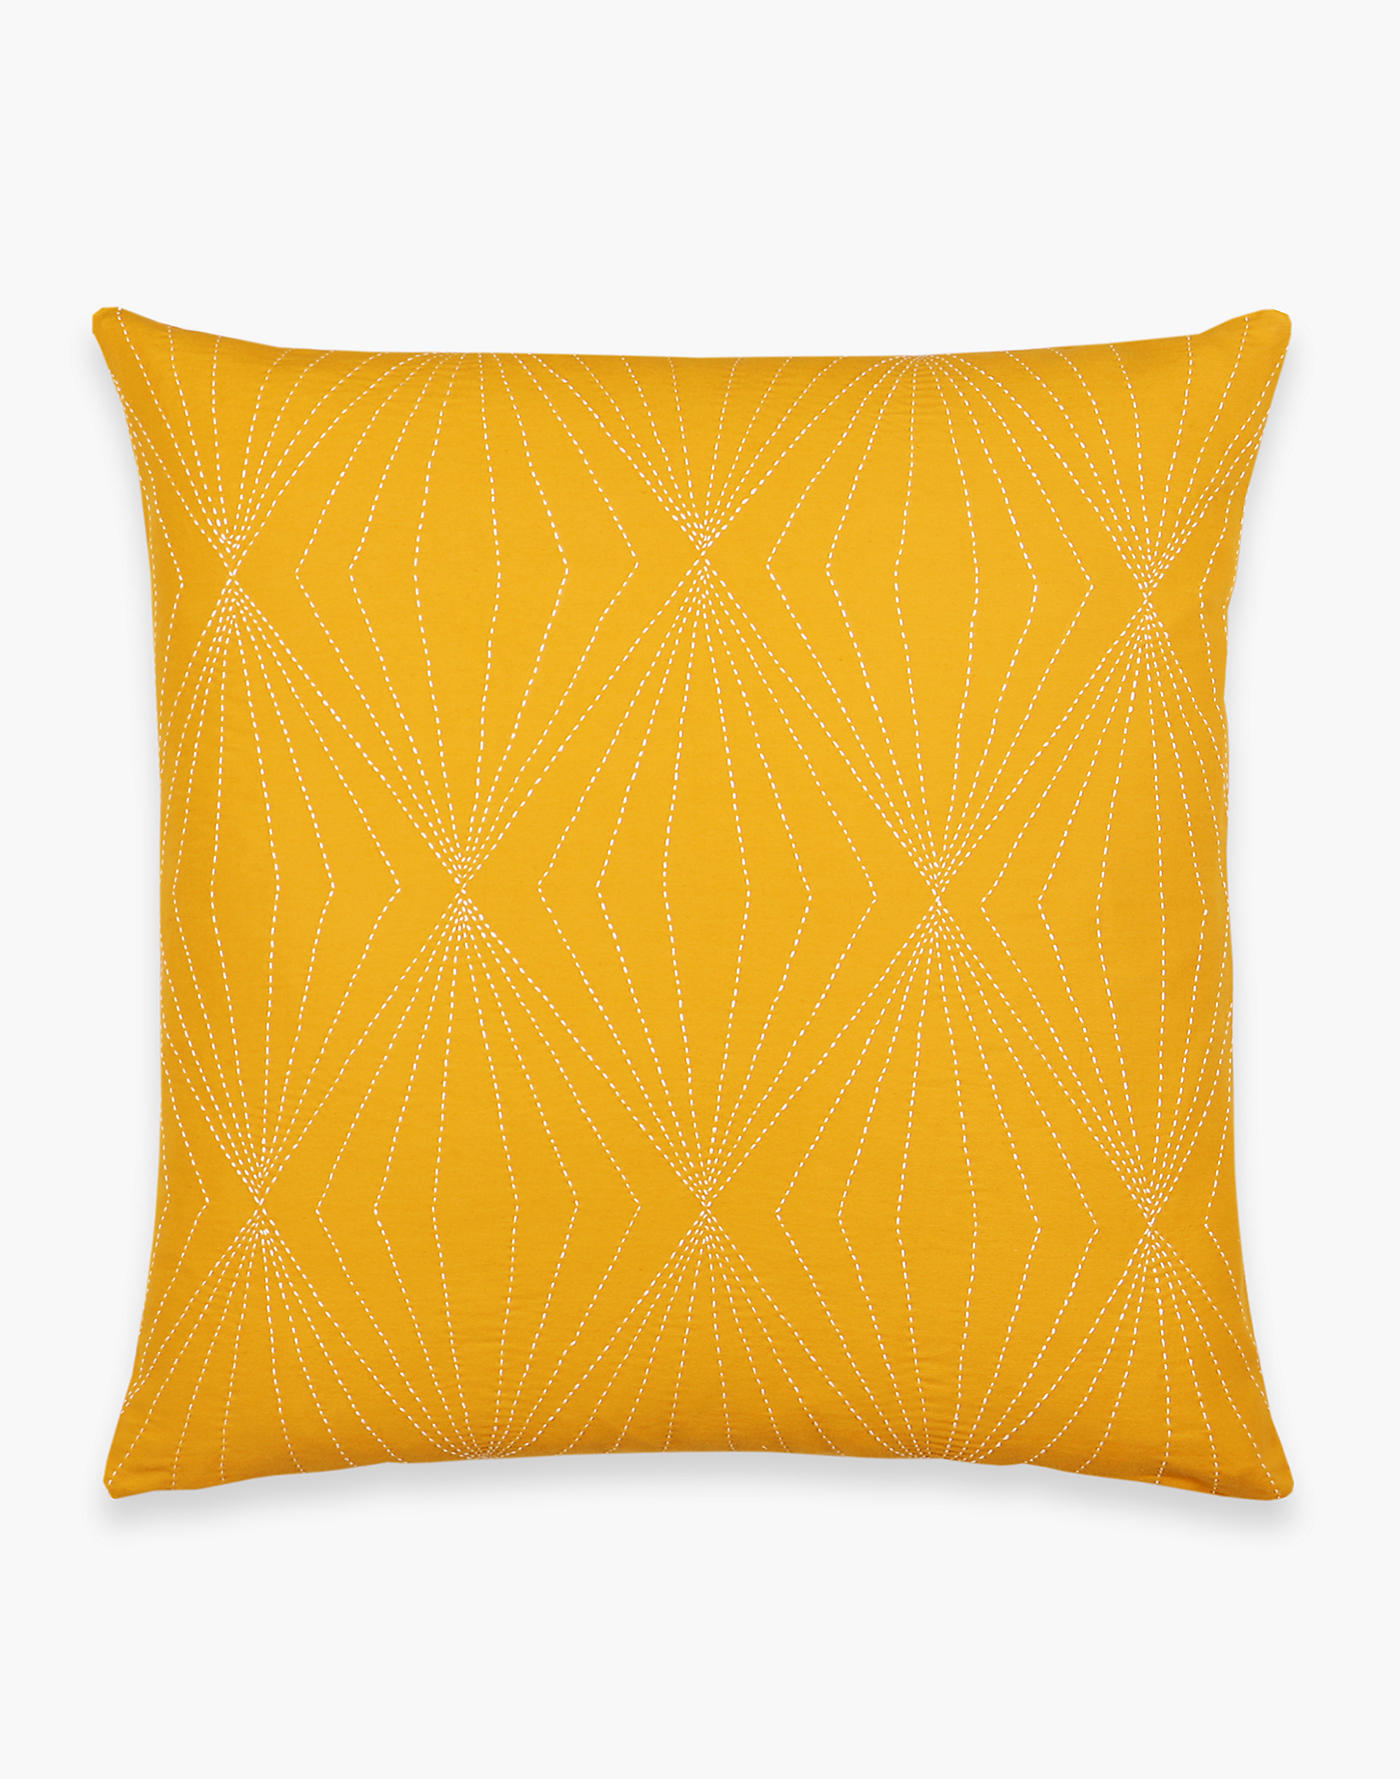 Madewell Anchal Stitched Organic Cotton Prism Throw Pillow